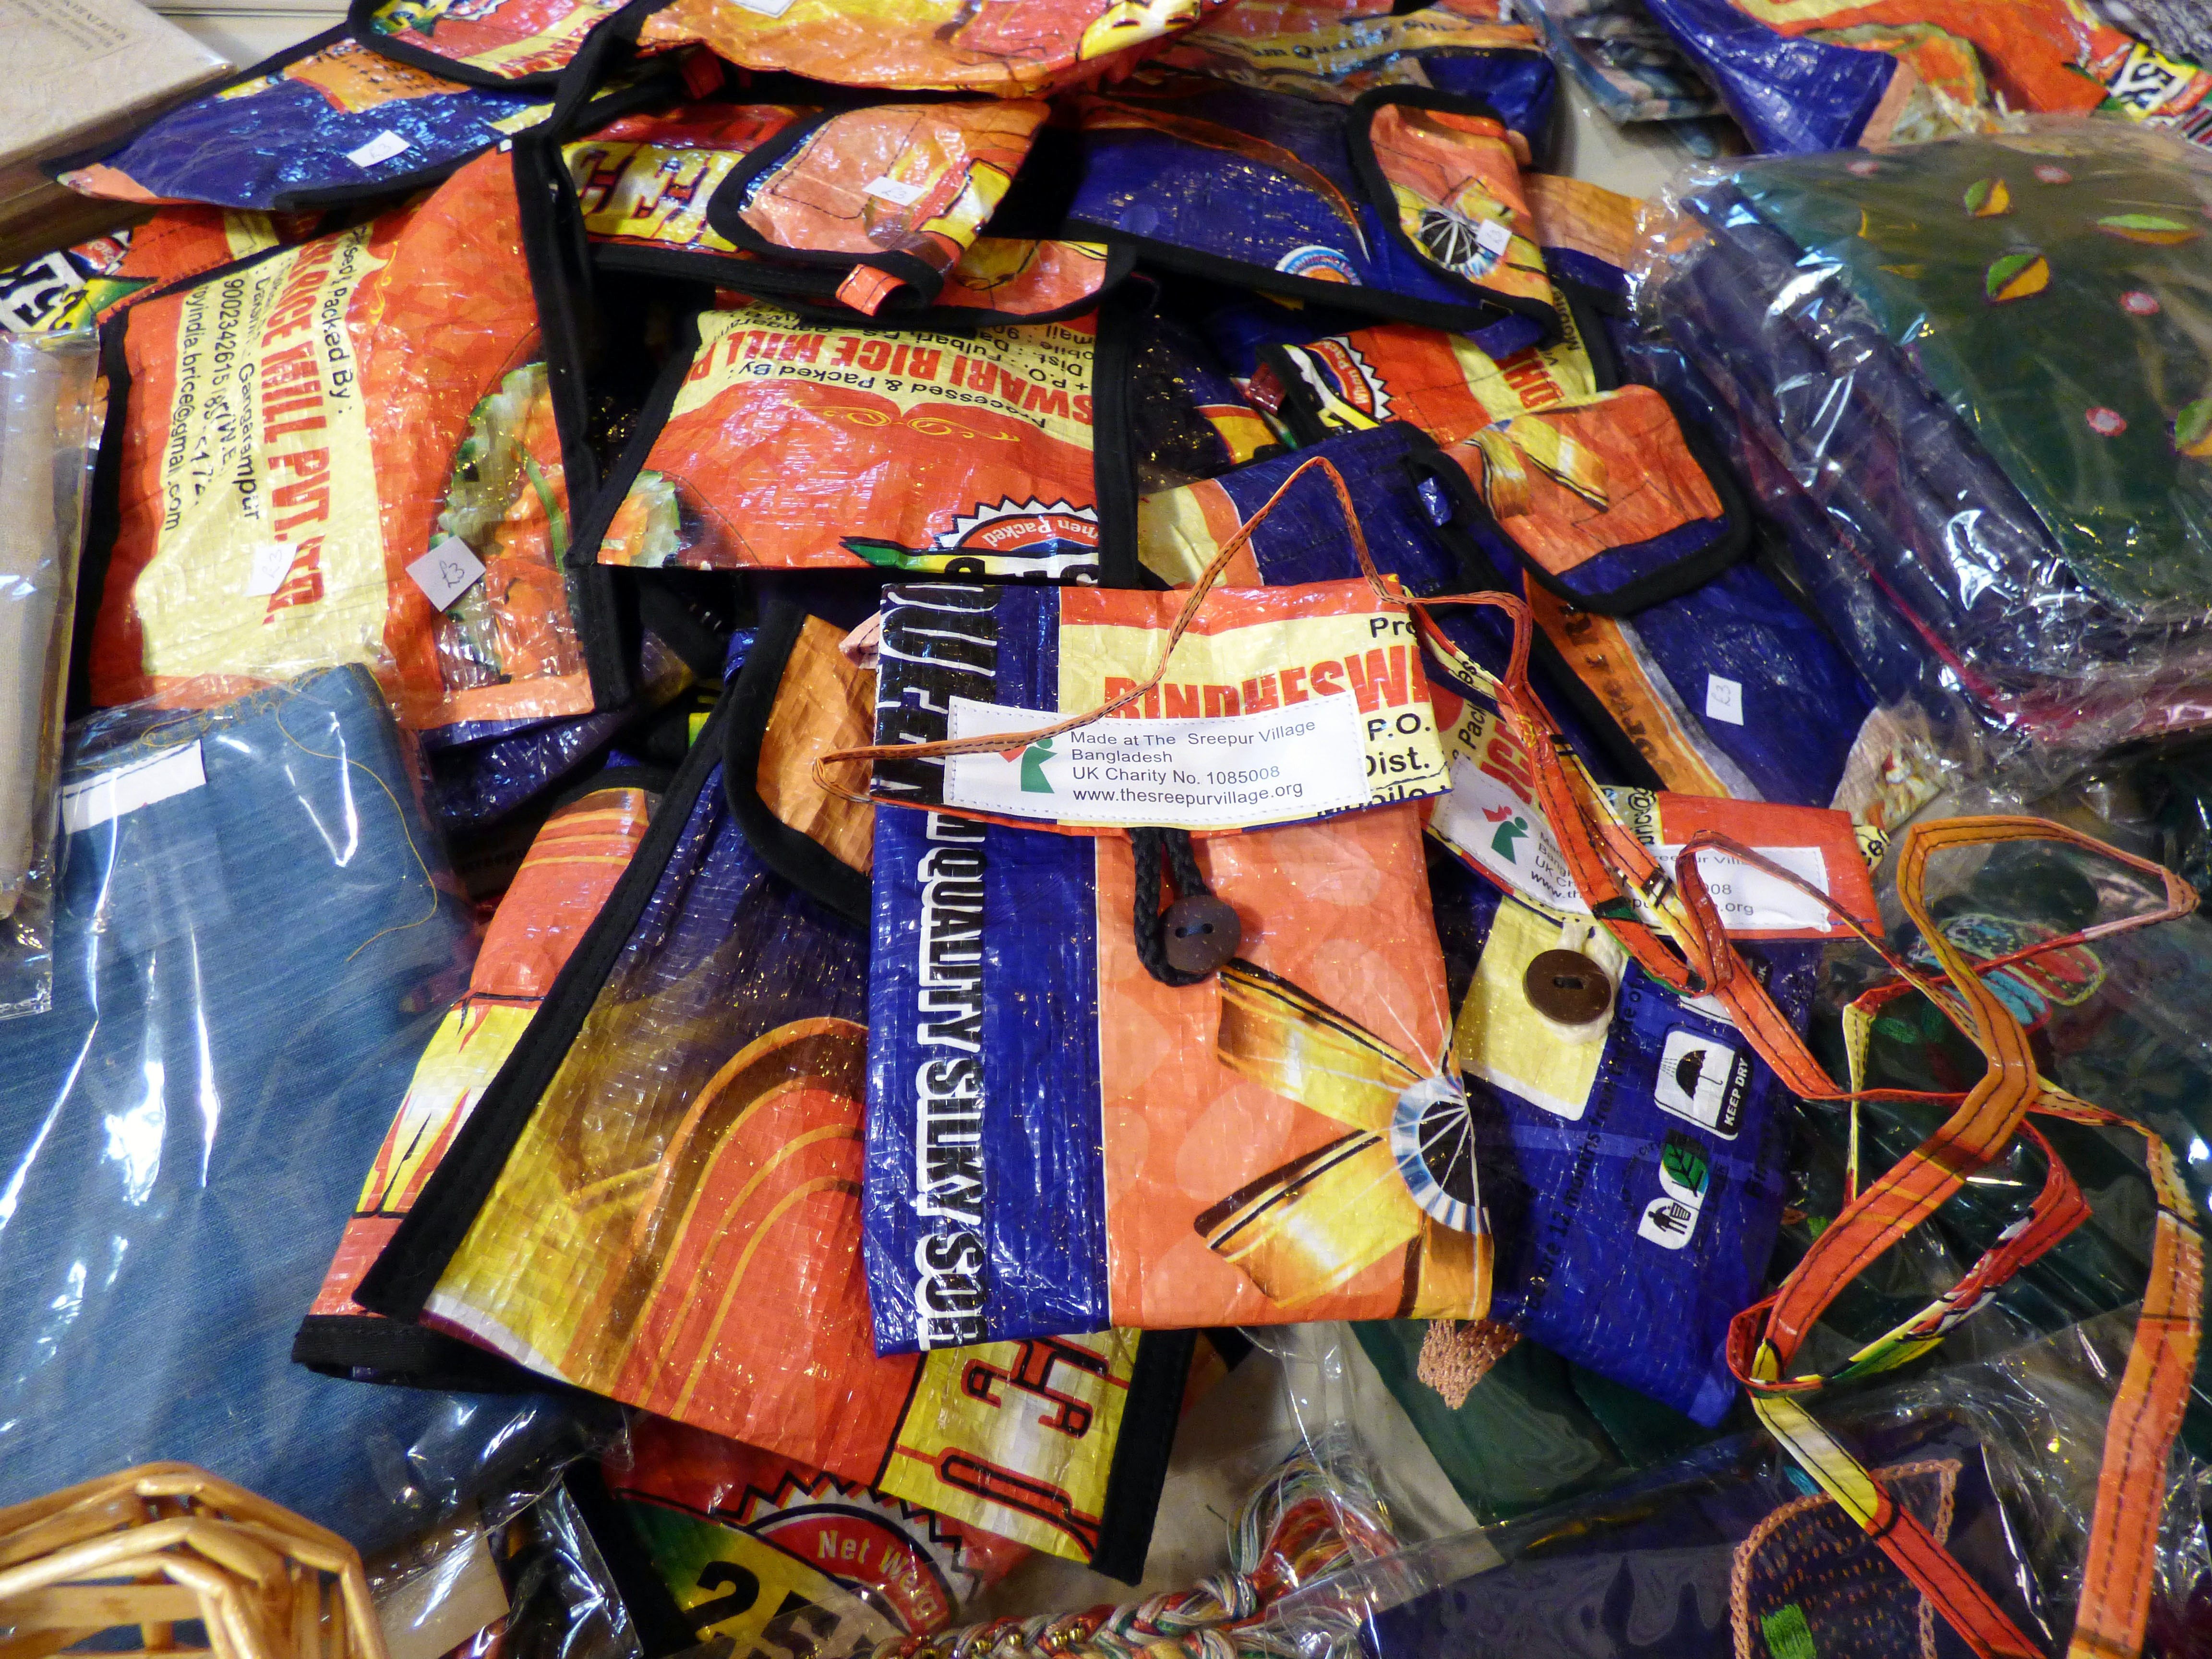 mobile phone bags for sale at Sreepur stall in St Barnabus, April 2016